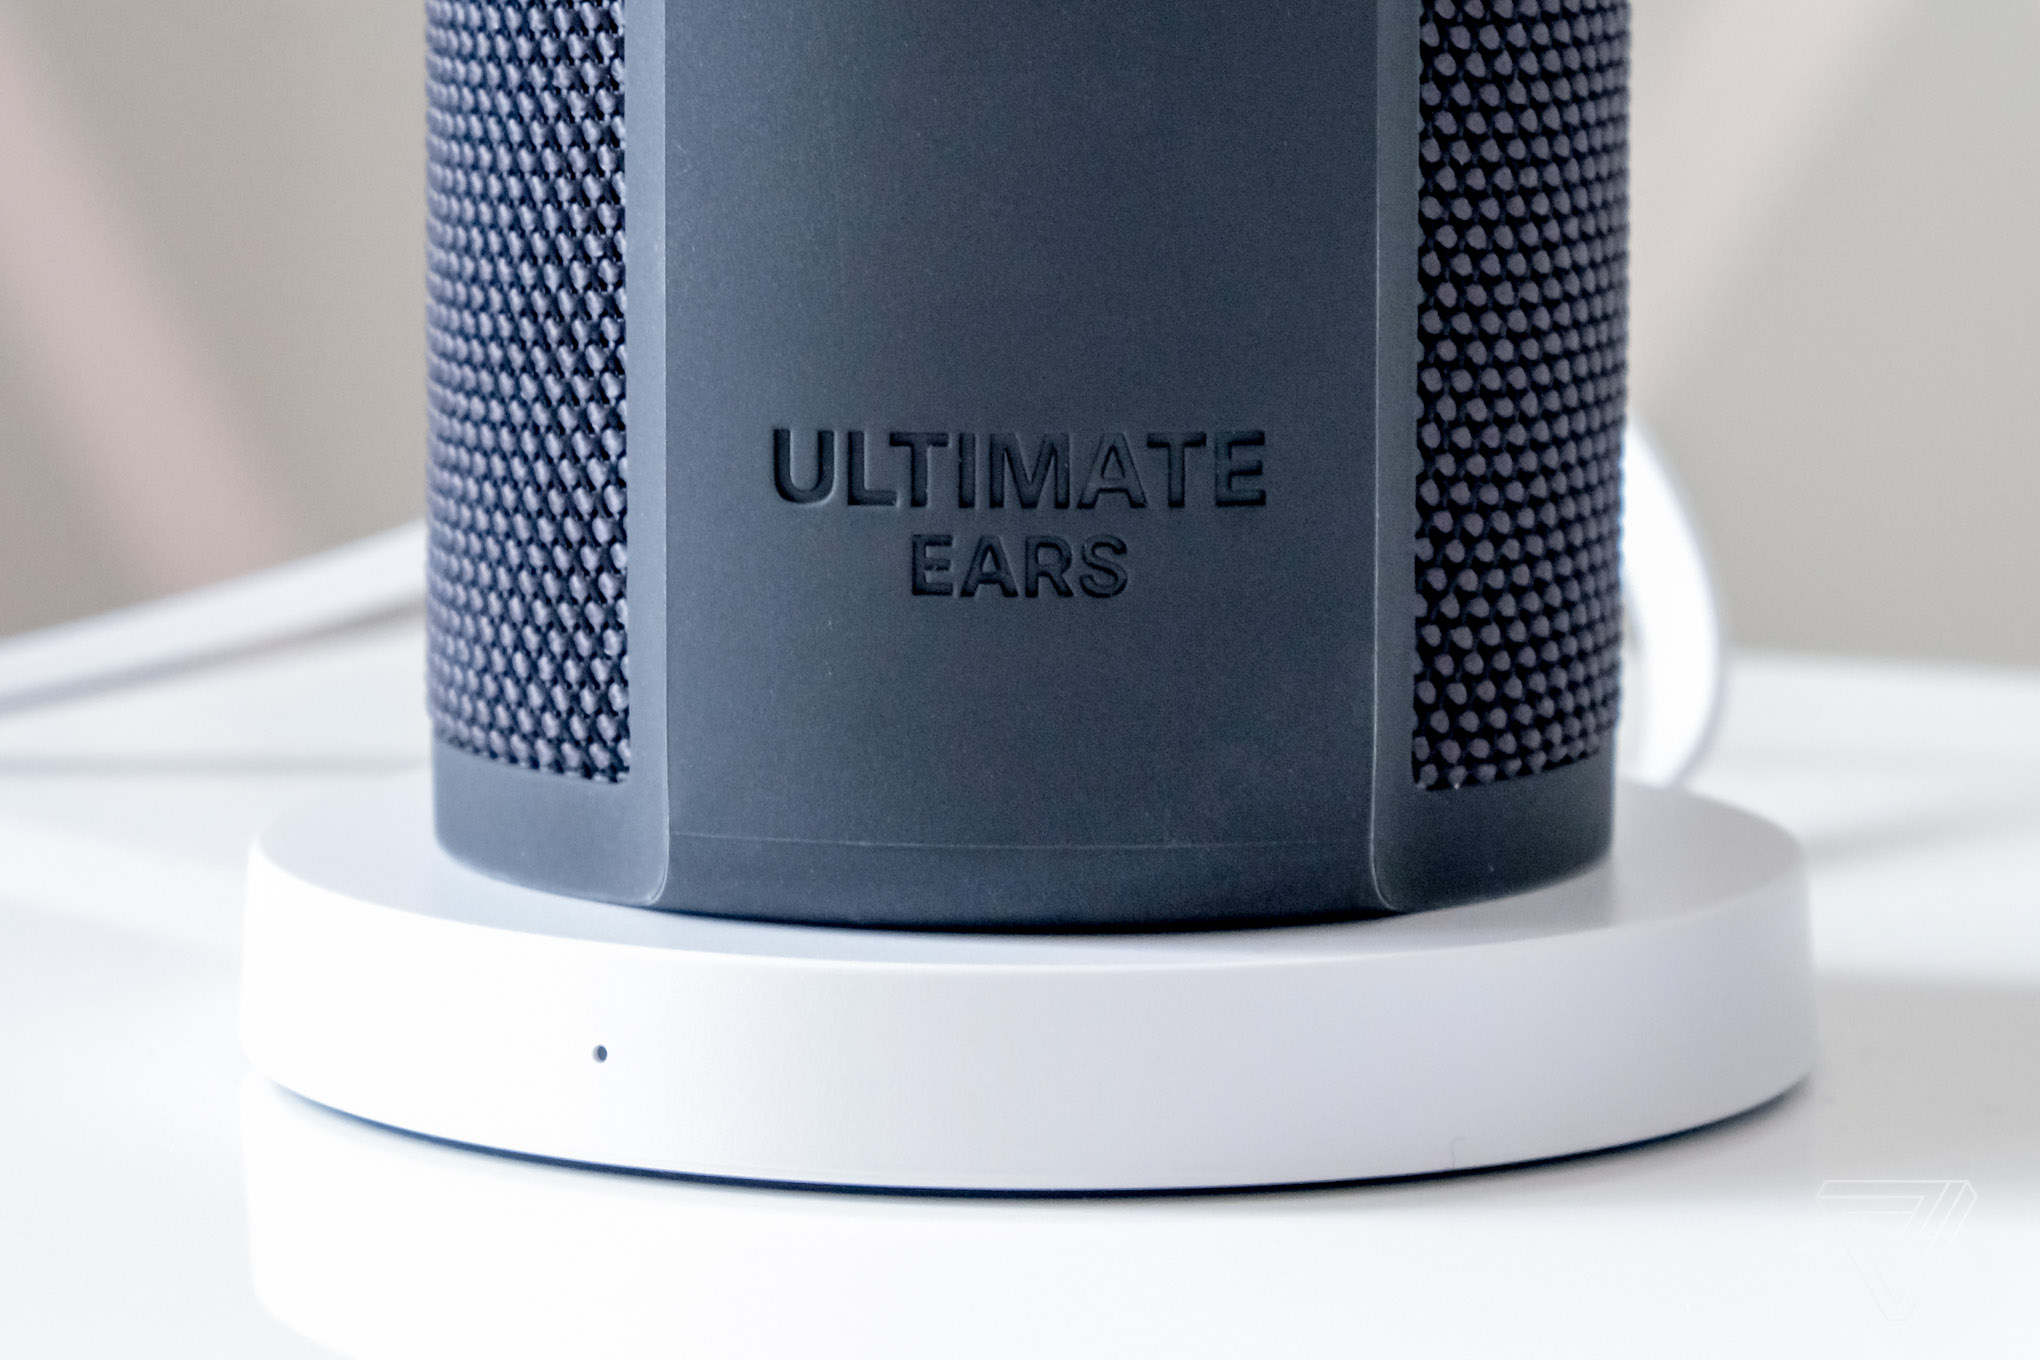 UE Blast is an Amazon Echo alternative with phenomenal sound